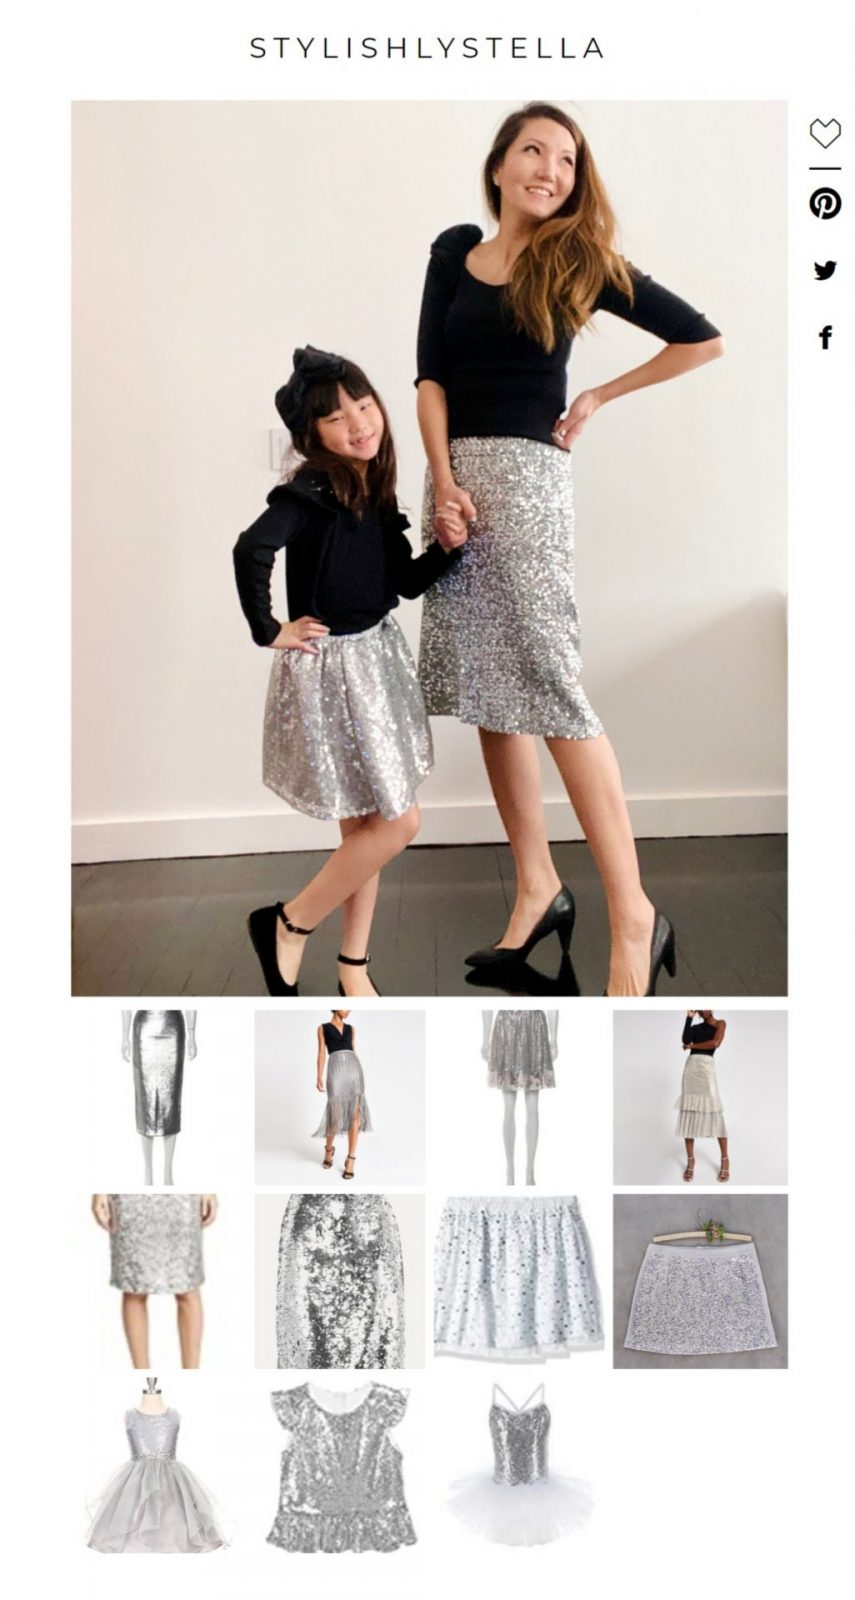 silver sequin skirt, matching mommy and me, matching mommy and me skirts, mommy and me fashion